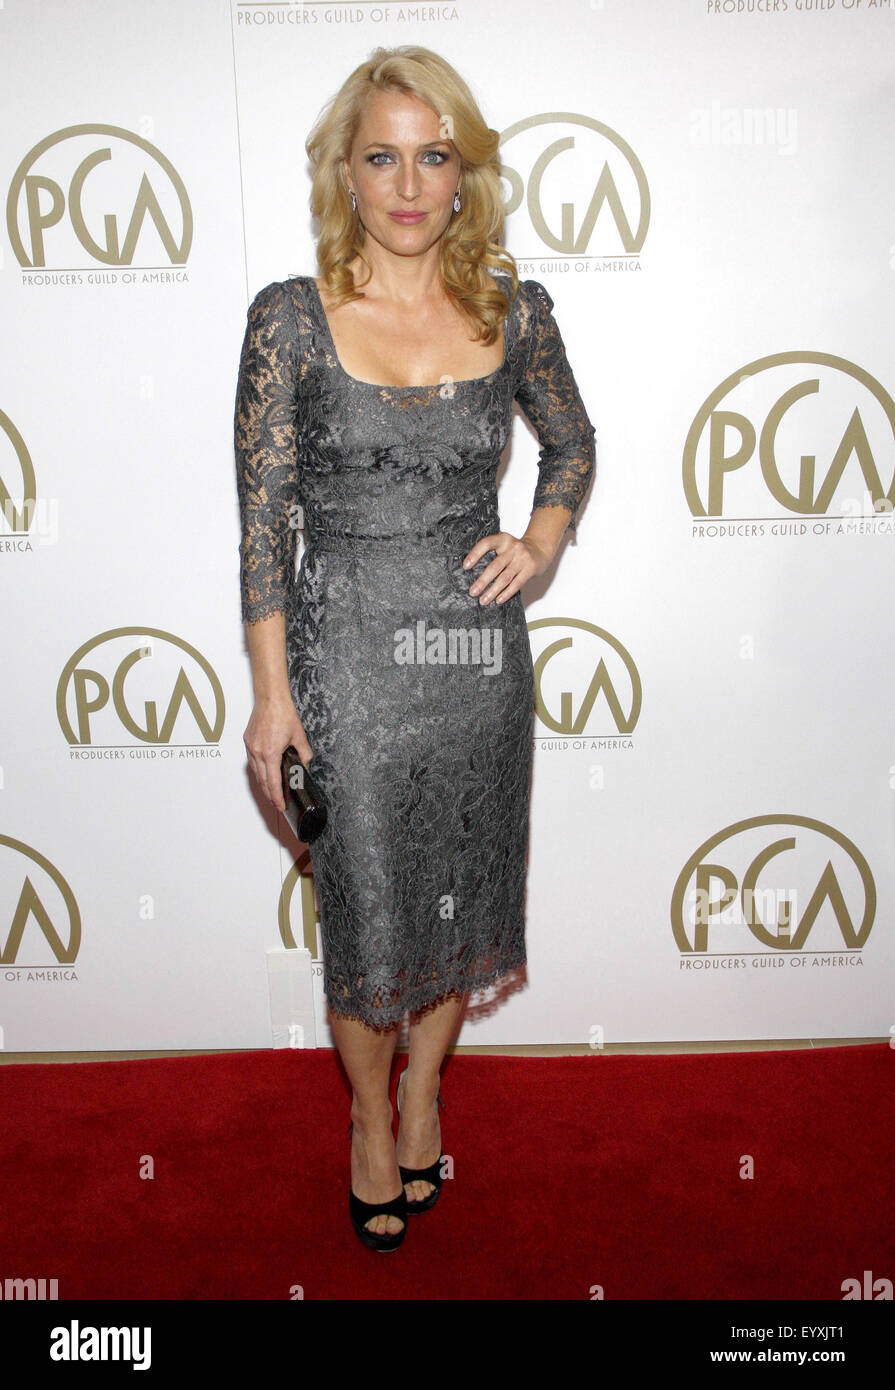 Gillian Anderson at the 25th Annual Producers Guild Awards held at the Beverly Hilton Hotel in Los Angeles on January - Stock Image